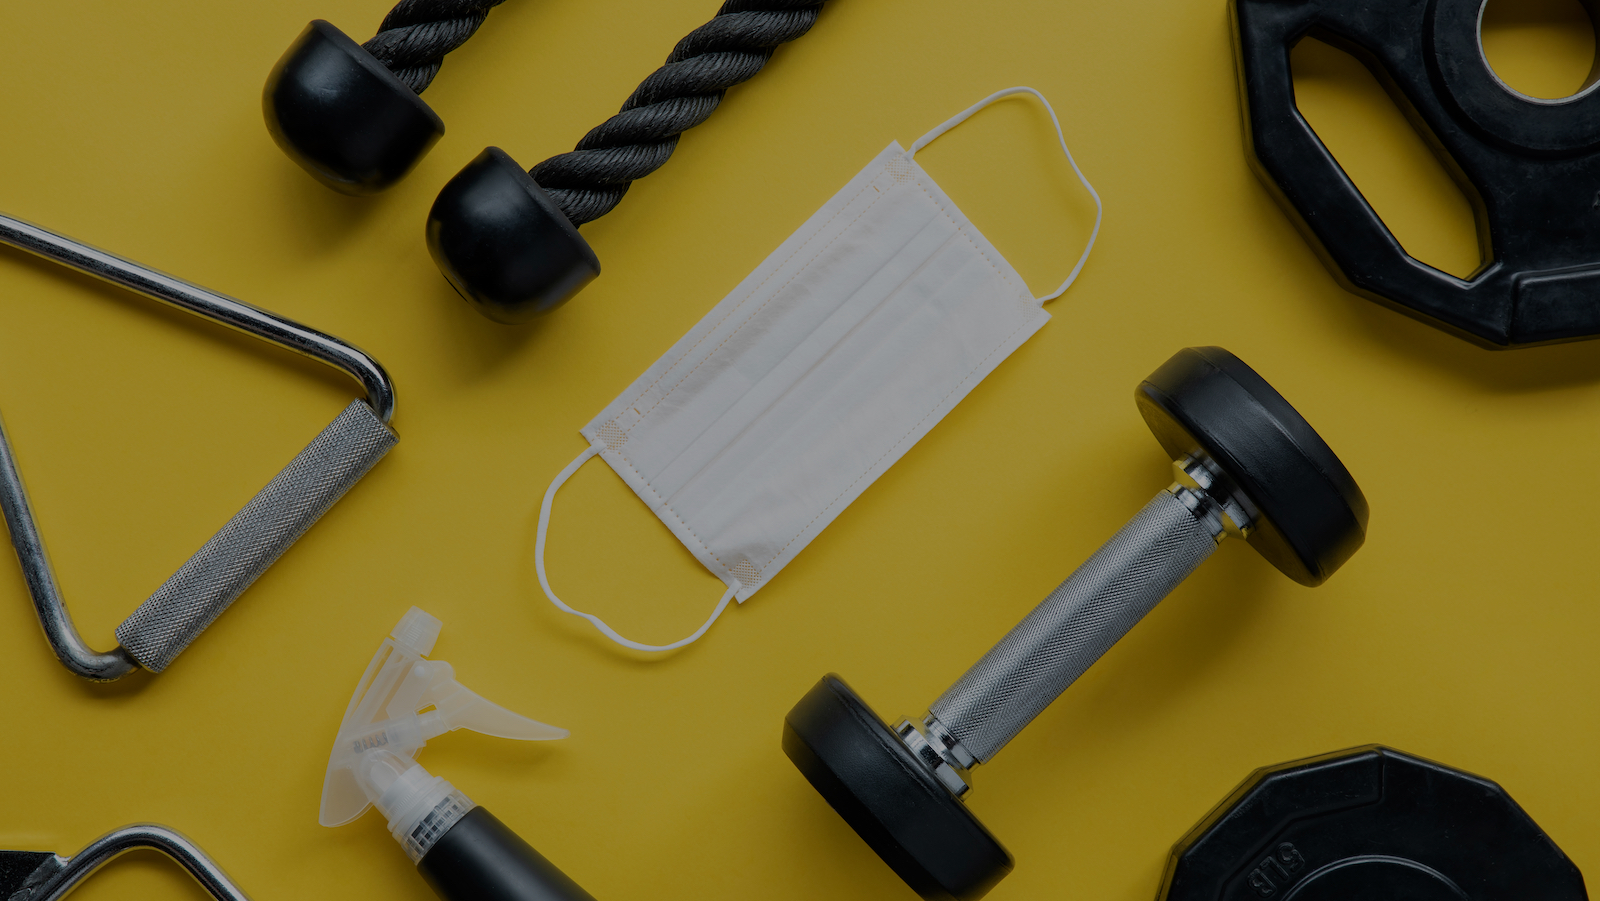 10 Safety Tips For Reopening Your Fitness Studio After COVID-19